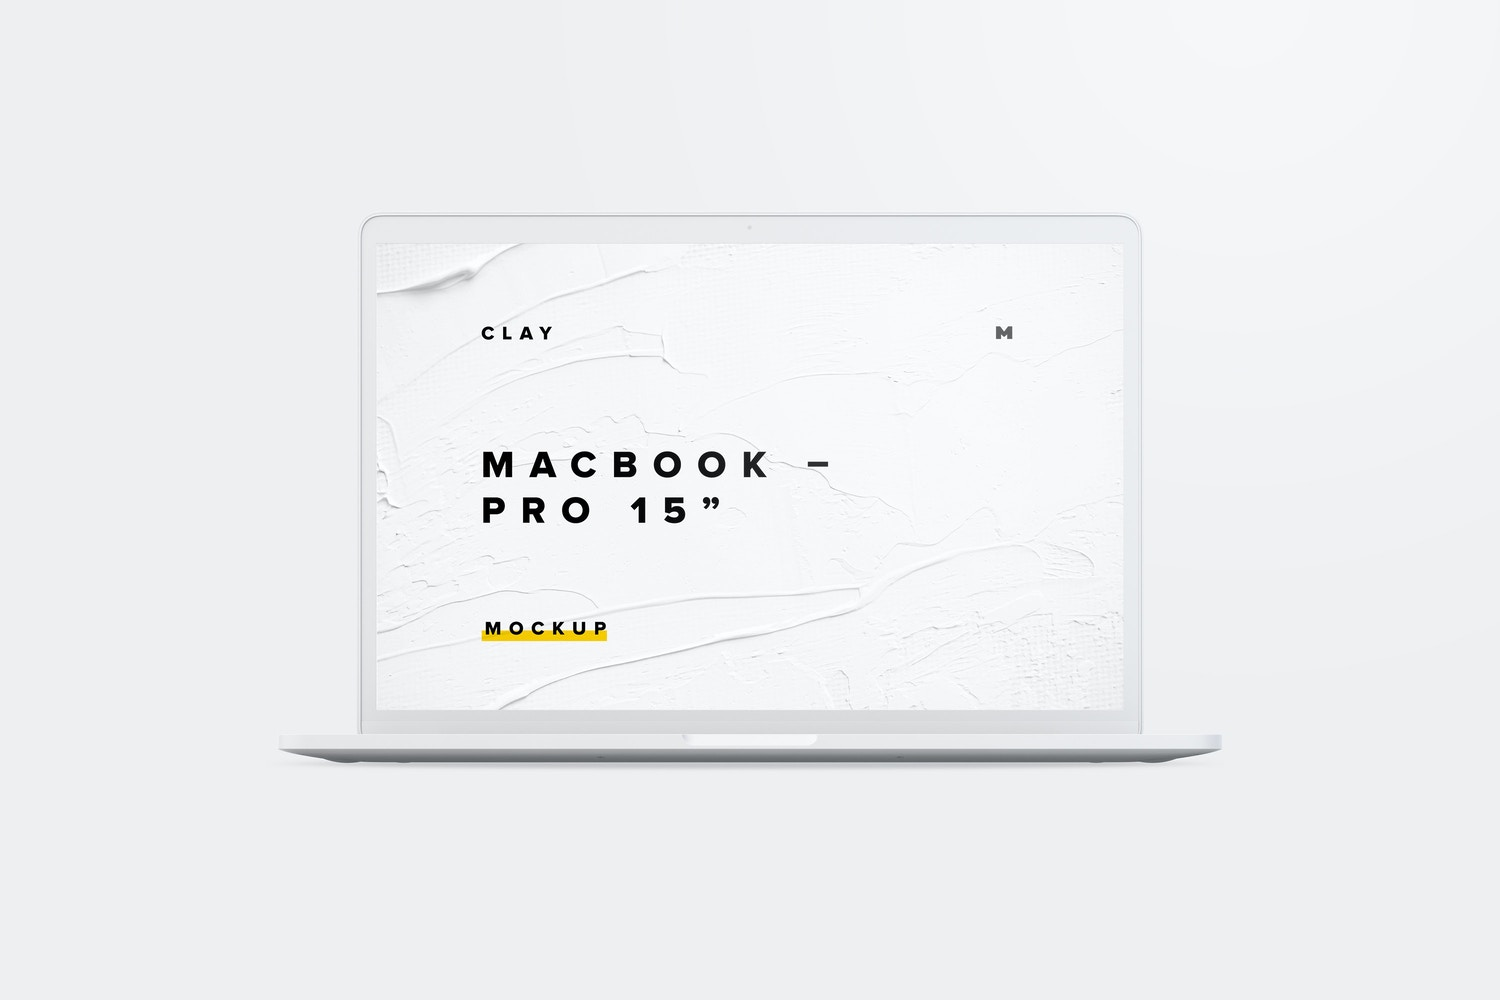 Clay MacBook Pro 15